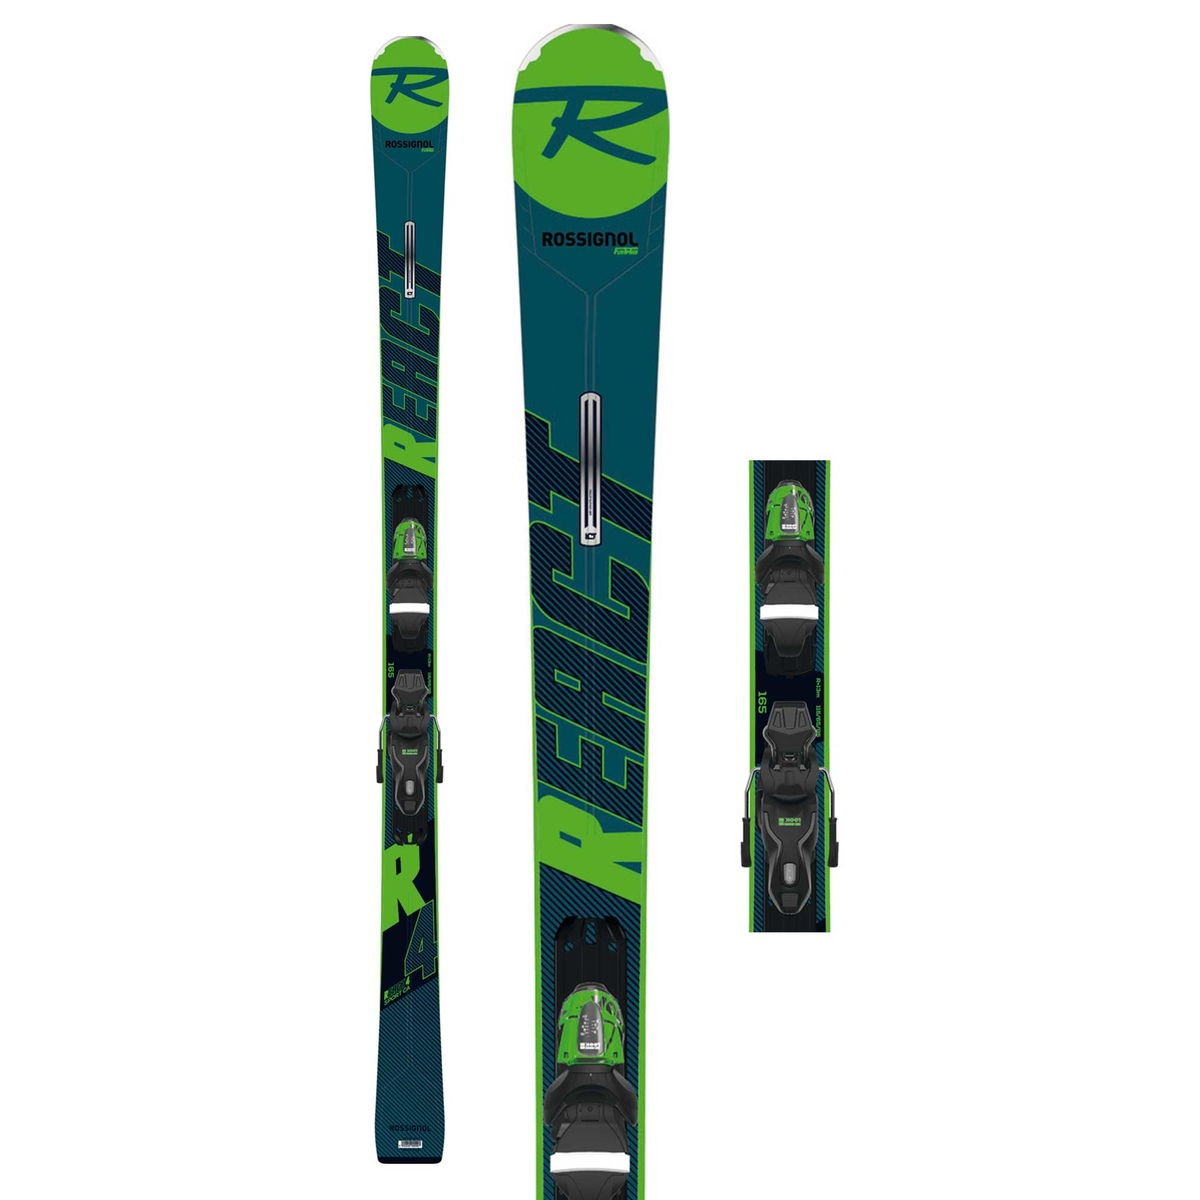 _PREMANUFACTURE_PRICE Rossignol REACT 4 SPORT CON ATTACCO XPRESS 10